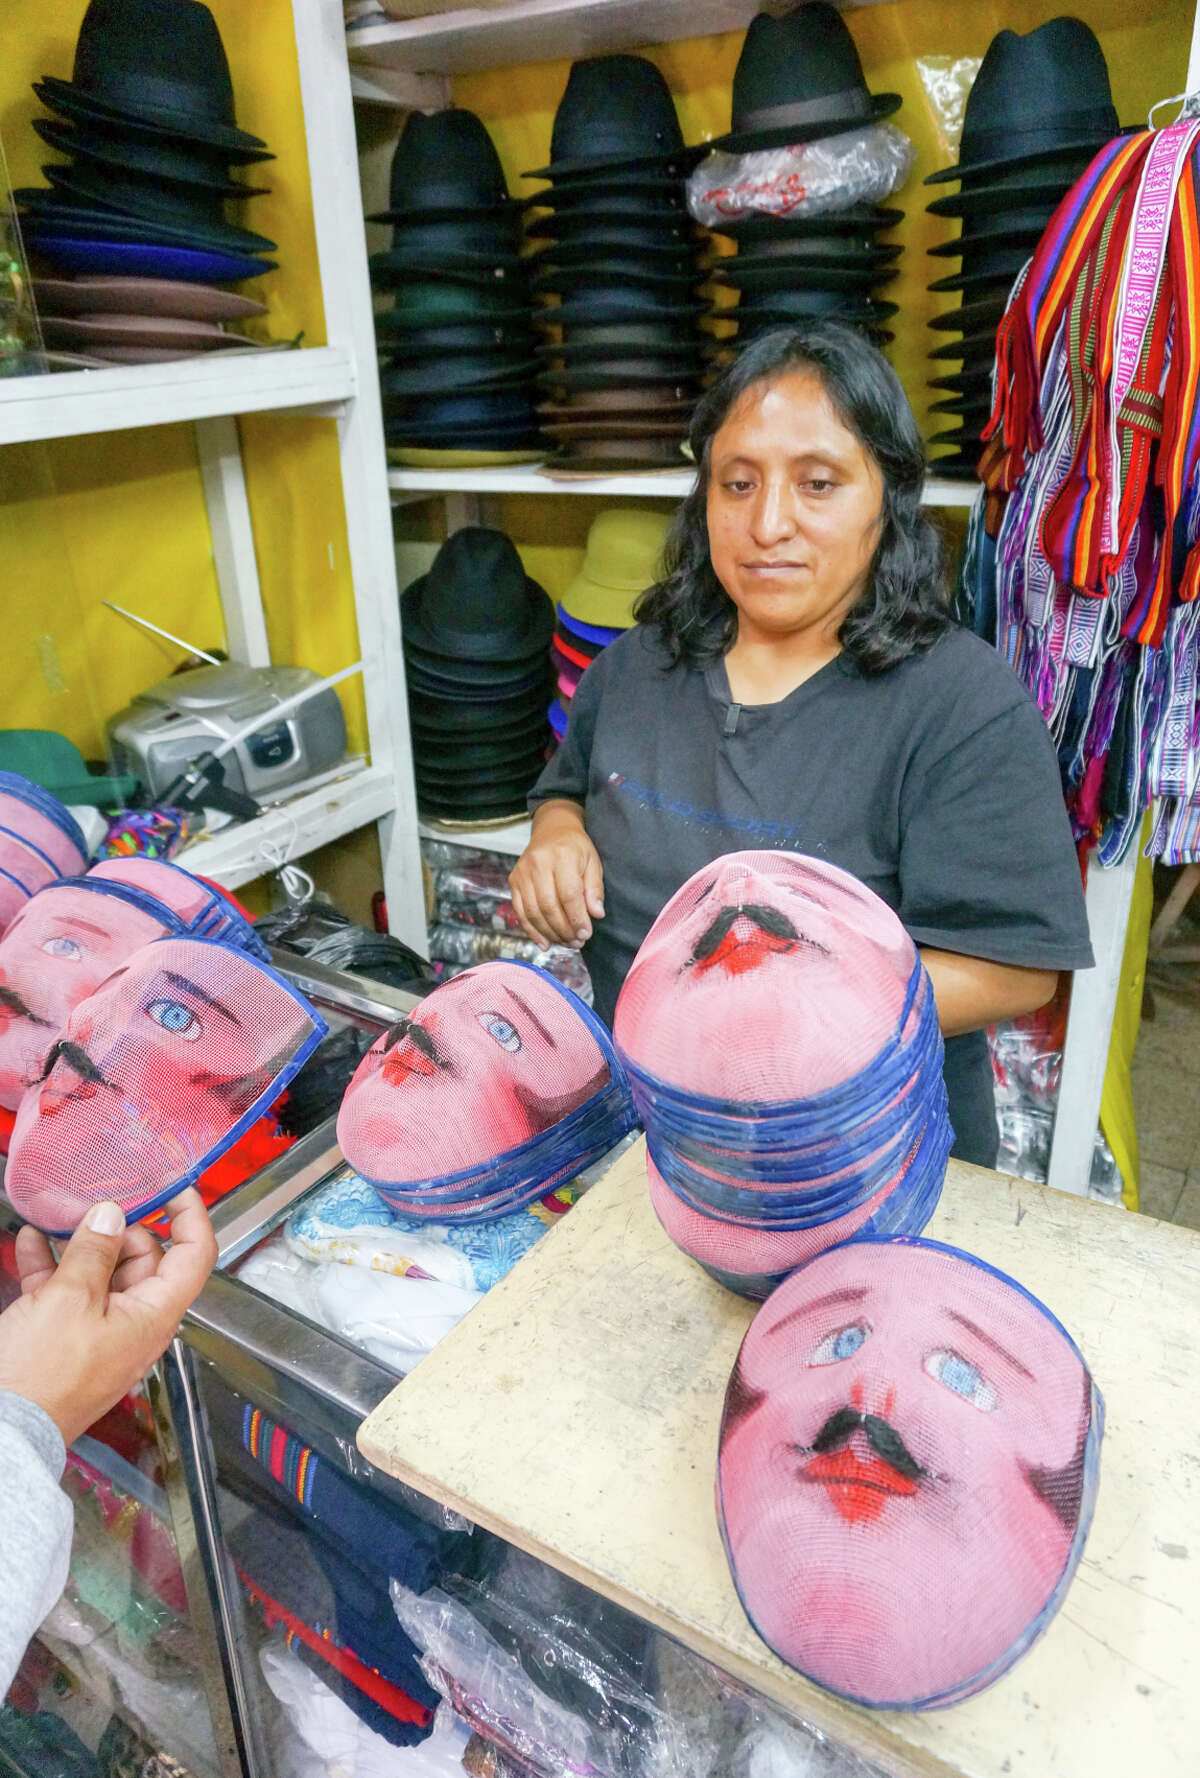 Spanish rucu masks for sale in the hat shop of César Anchala in the San Roque neighborhood. Quito is still colorful, and safer, after a renovation.